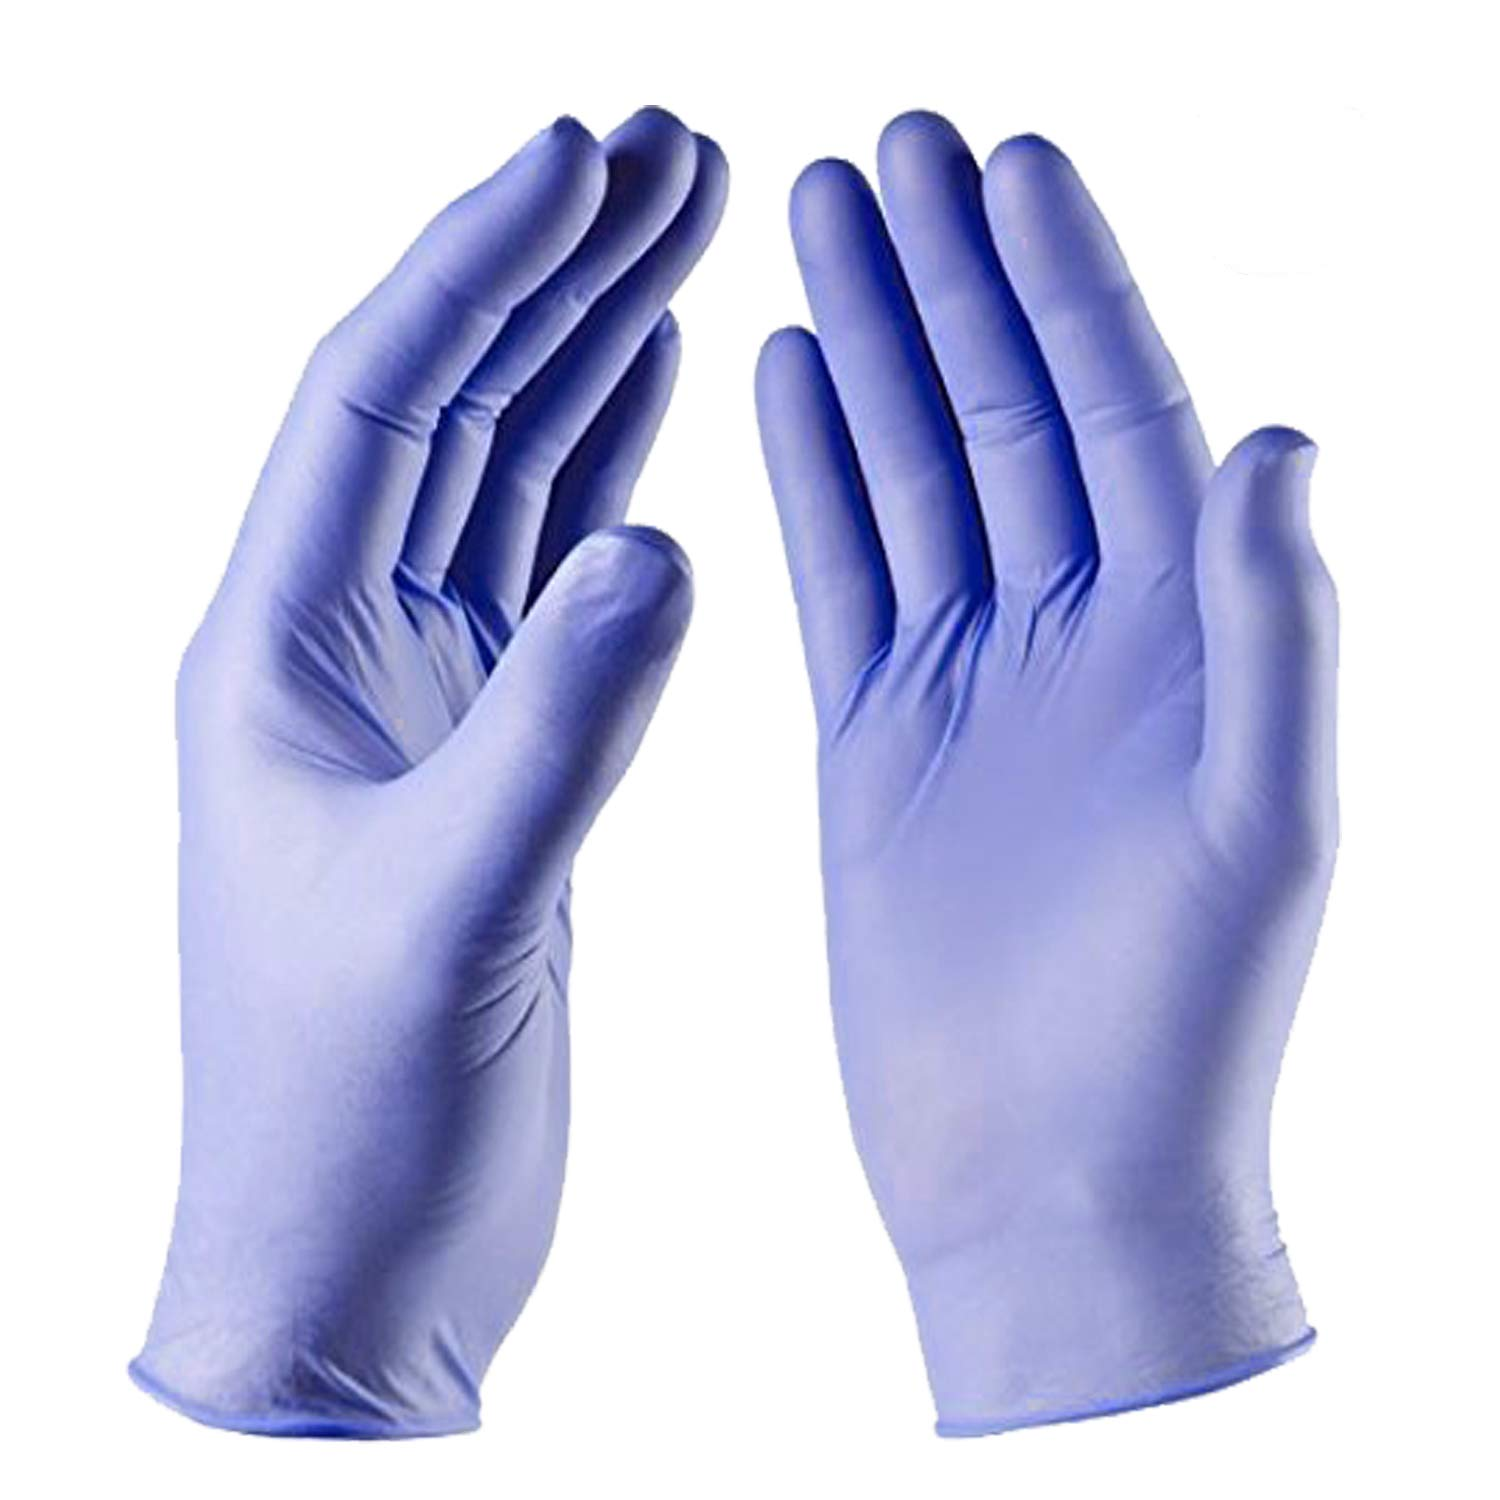 Blue Nitrile Exam Gloves - Medical Grade, Powder Free, Latex Rubber Free, Disposable, Non Sterile, Finger Tip Textured, 2.5 mil, Box of 200, KoolTouch, by Vivid (Medium)